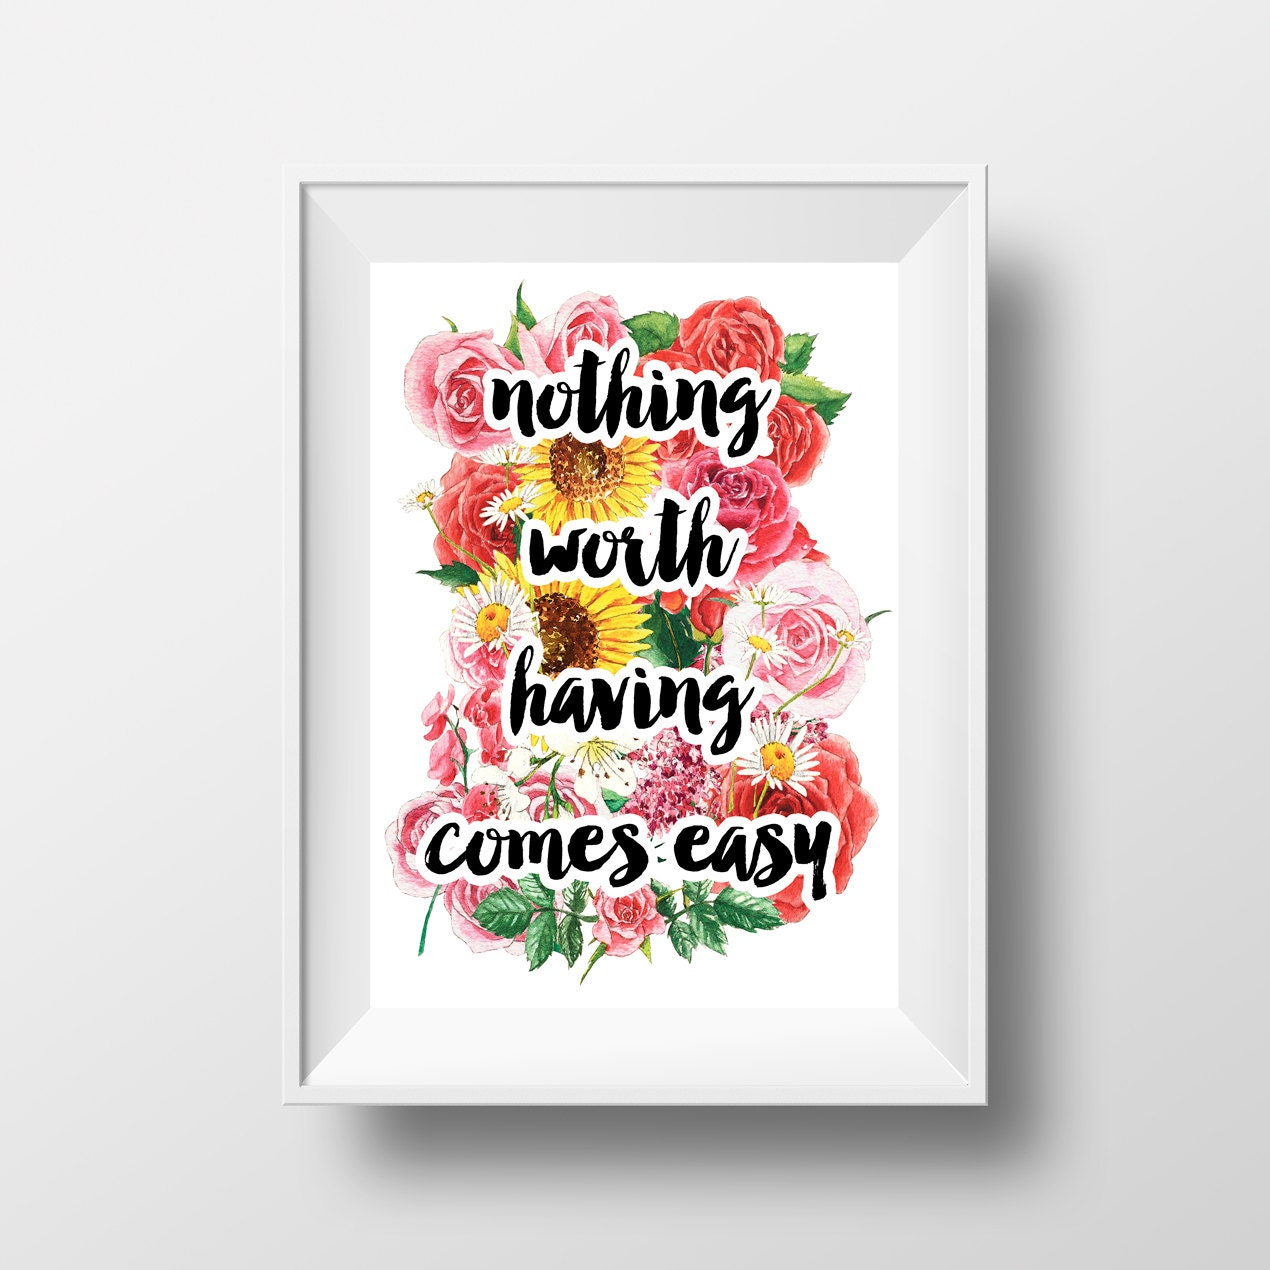 Nothing Comes Easy by Y A Tittle 9781600782107 (Hardback, 2009)